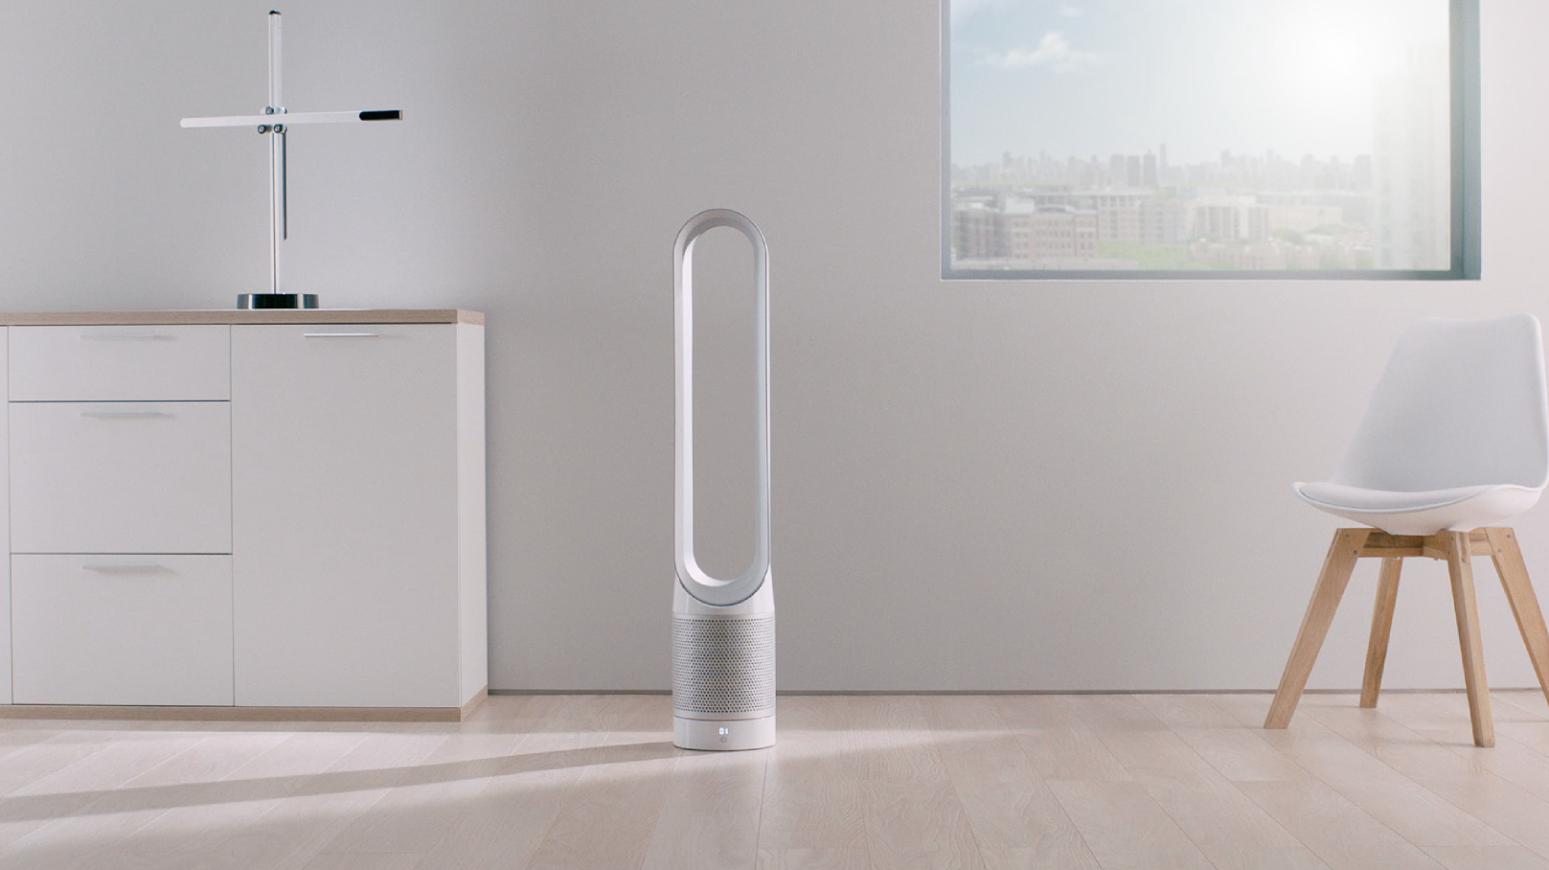 Dyson's new purifier fan purportedly tackles the problem of